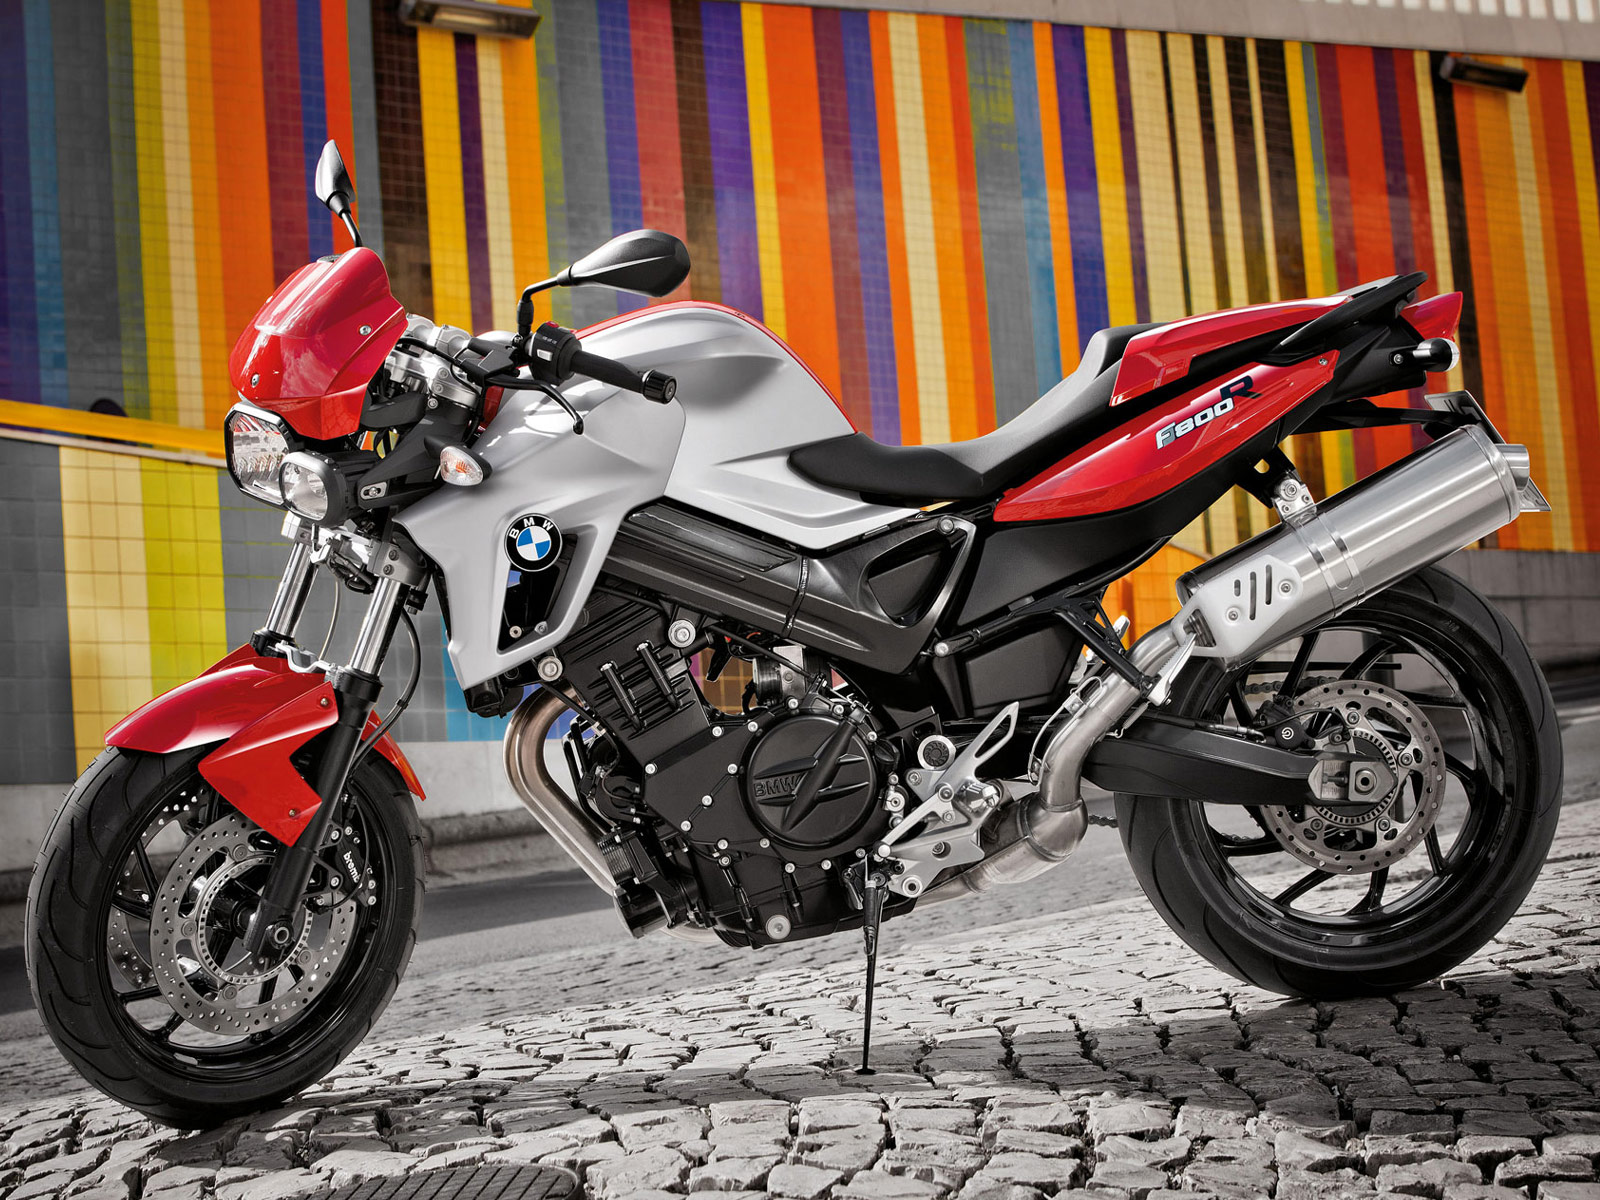 2012 BMW F800R Motorcycle